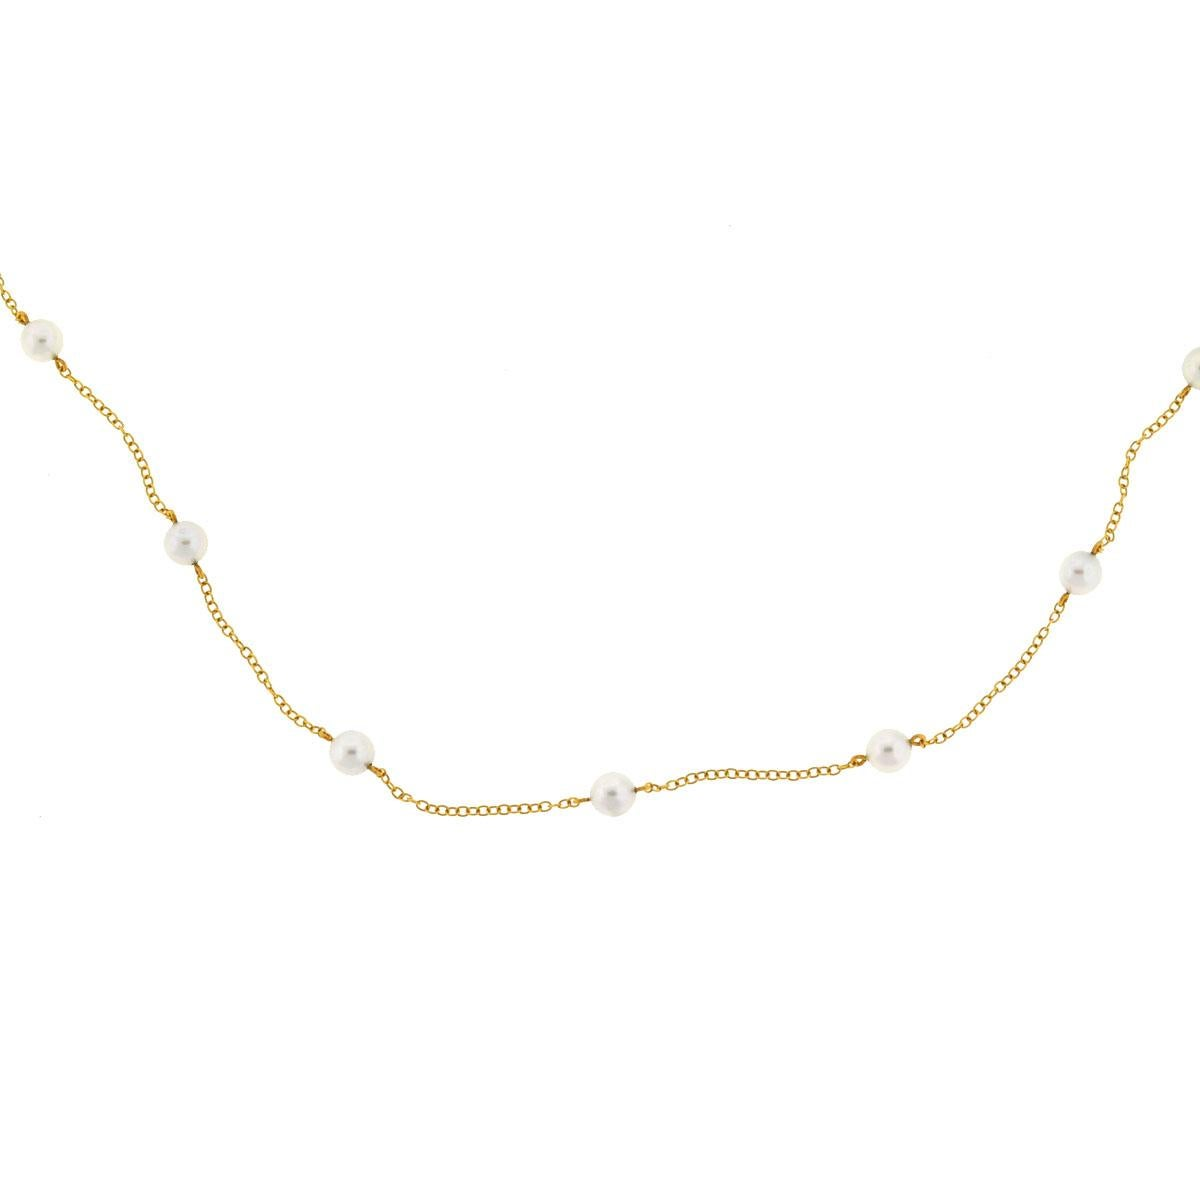 Mikimoto 18 Karat Yellow Gold with White Akoyo Cultured Pearls Station Necklace